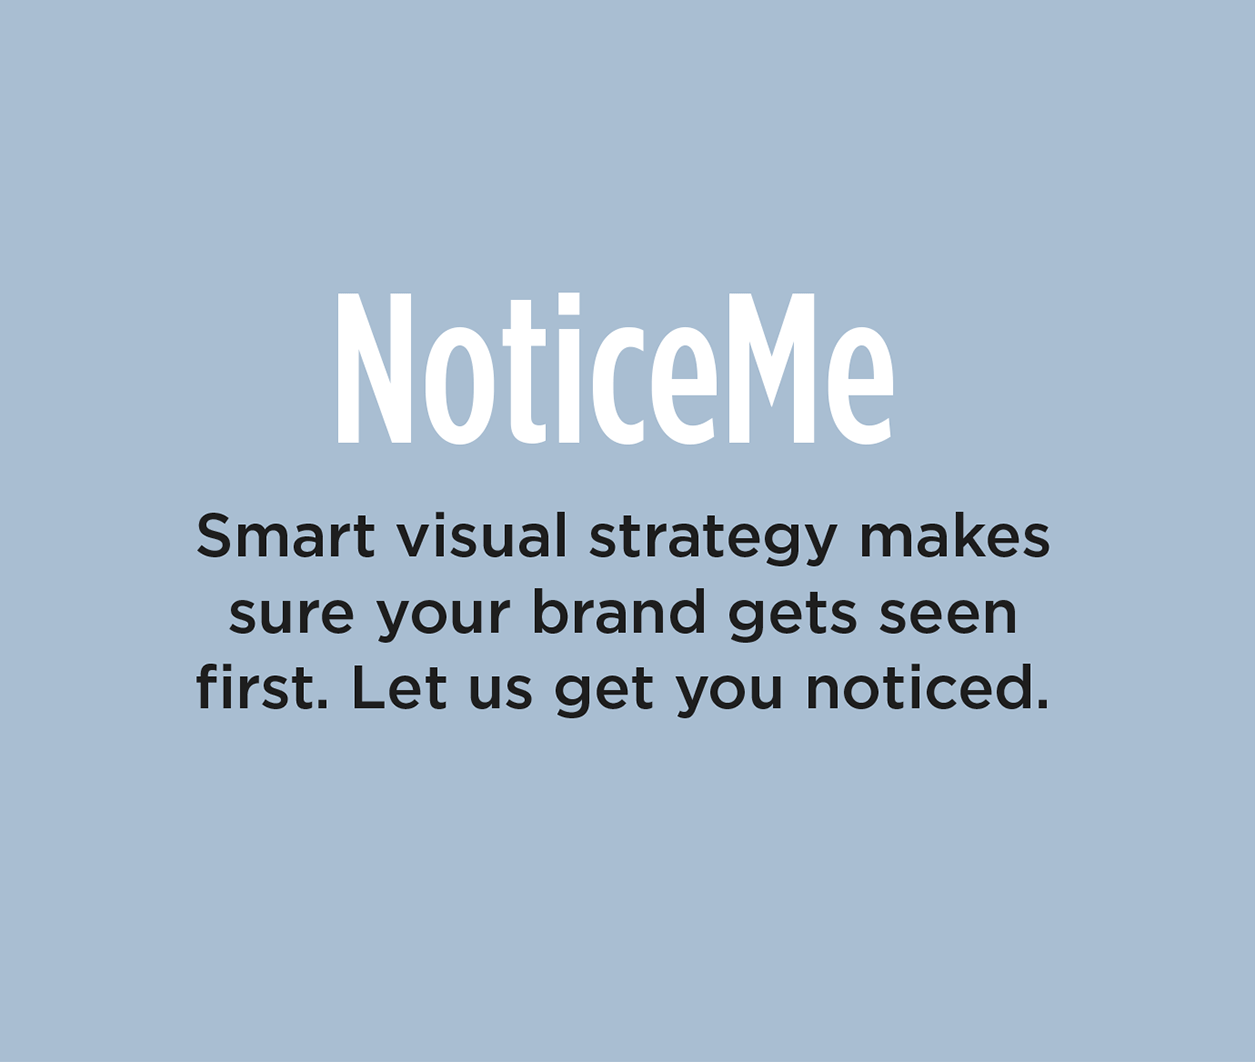 NoticeMe - Smart visual strategy makes sure your brand gets seen first. Let us get you noticed.